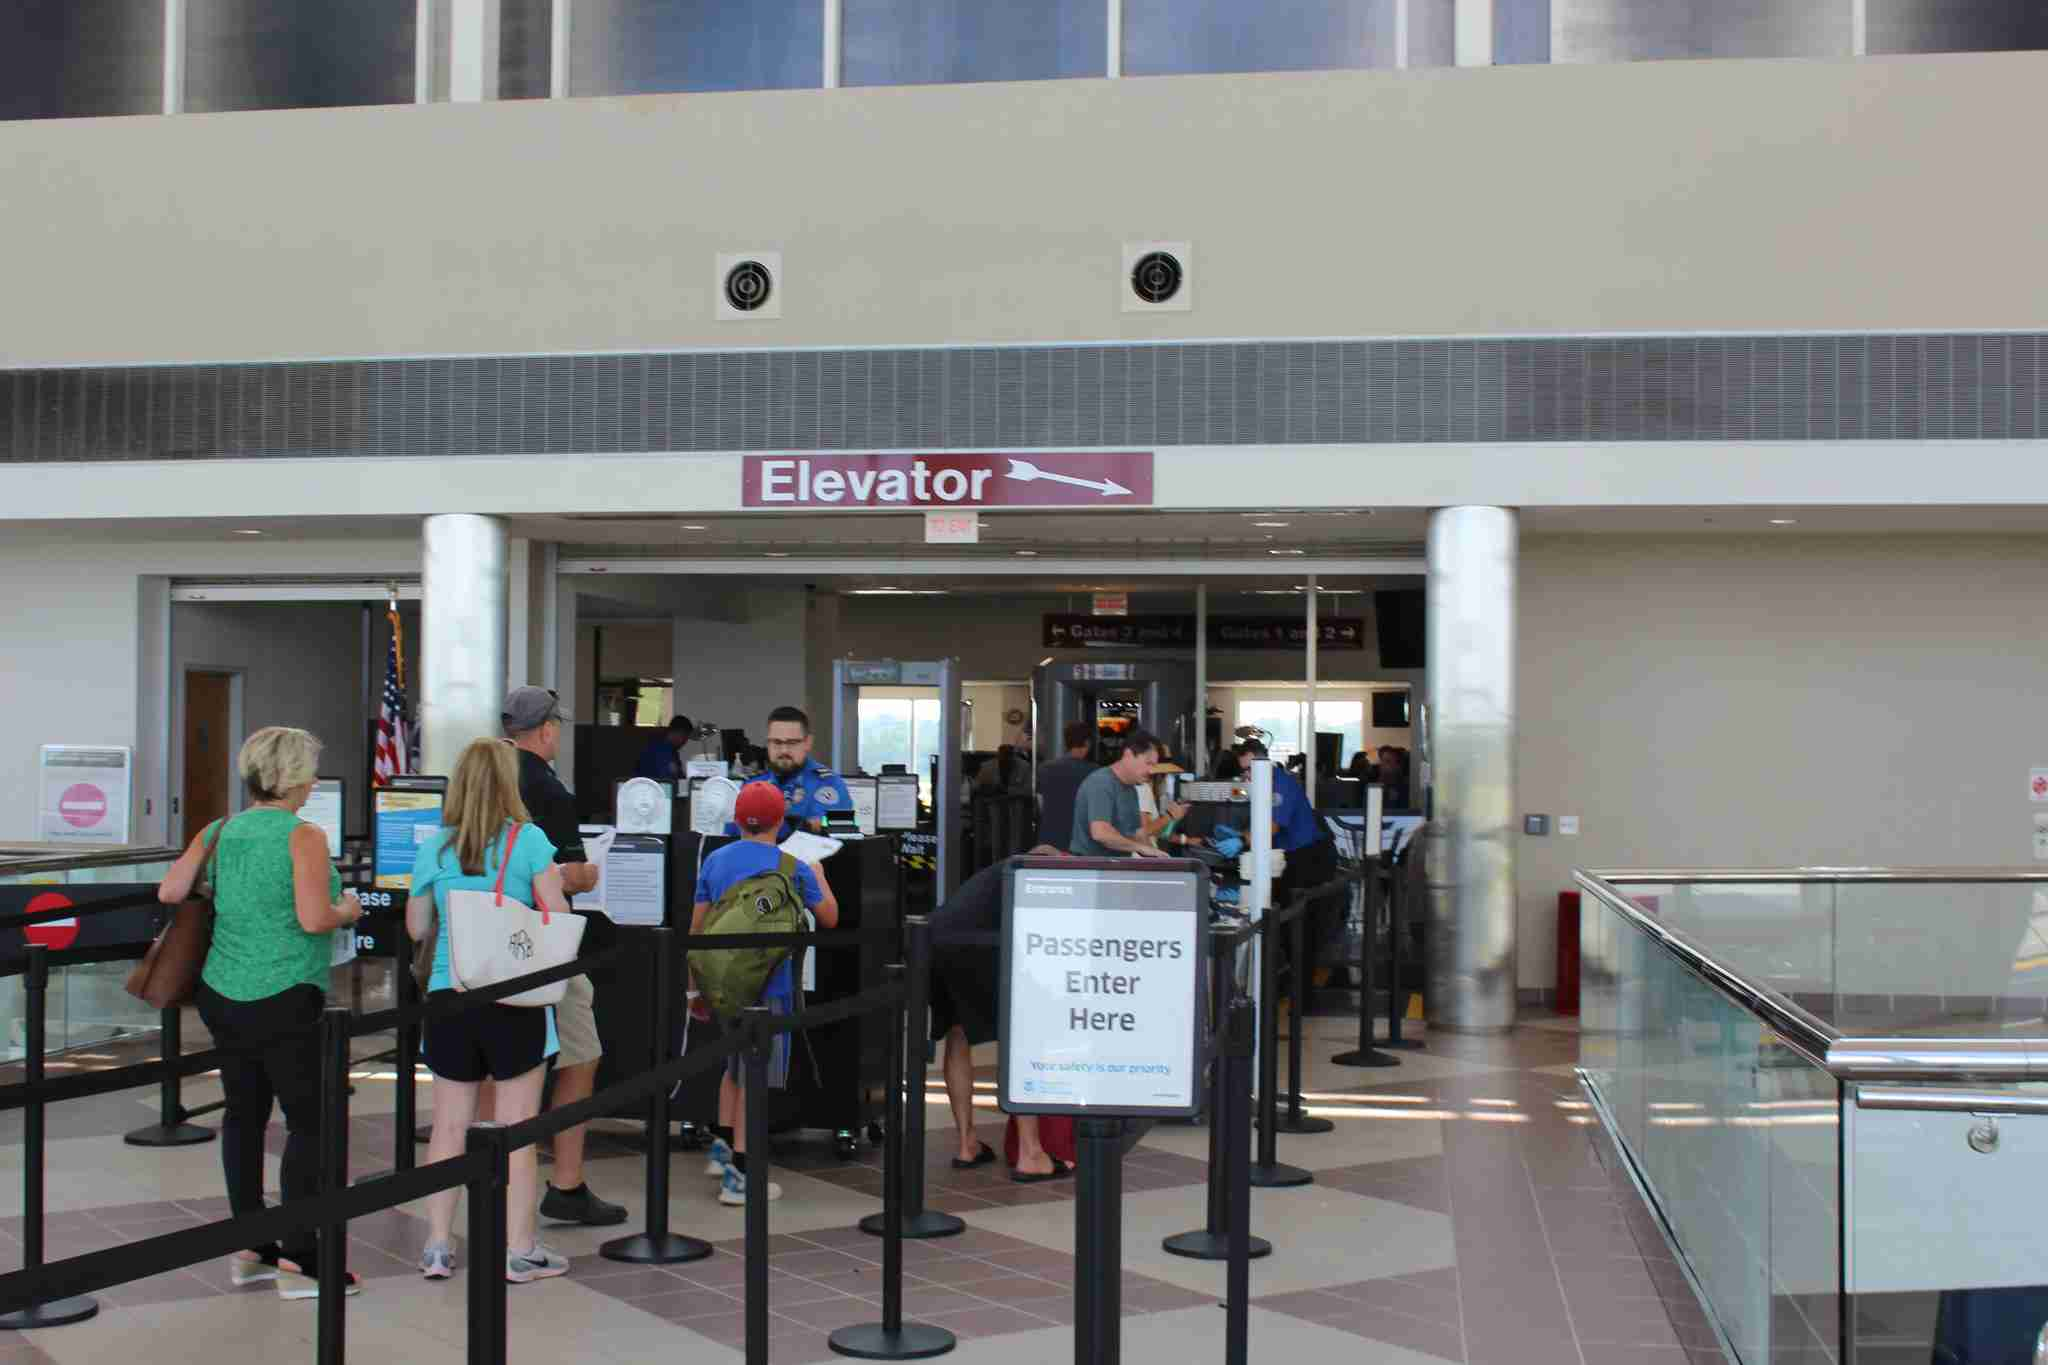 TSA screening checkpoint at MIdAmerica Airport. (Image by Max Prosperi/The Points Guy)